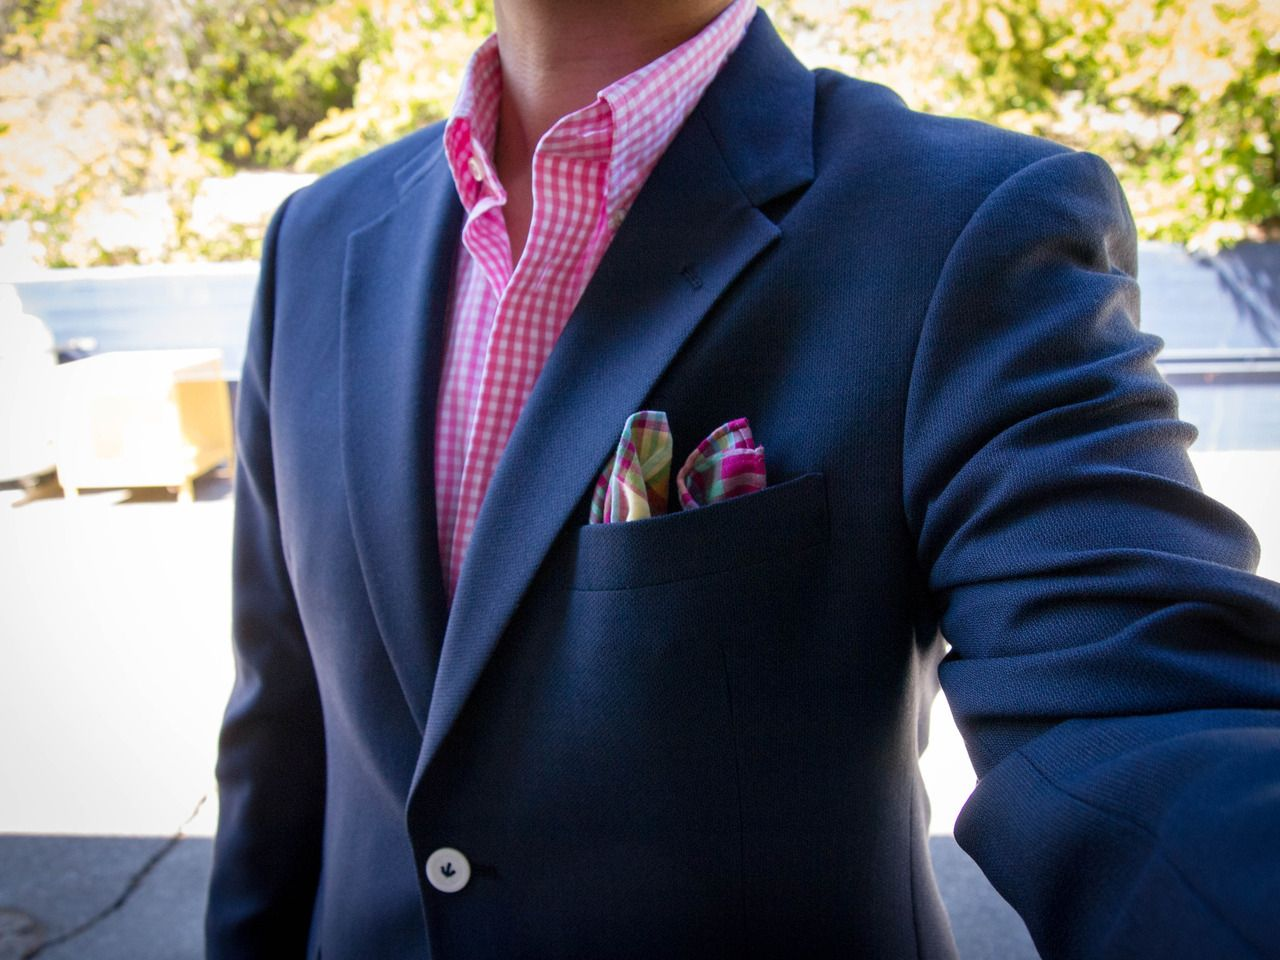 A Pocket Square Is Worn To Compliment The Suit So It Should Be Inspired By